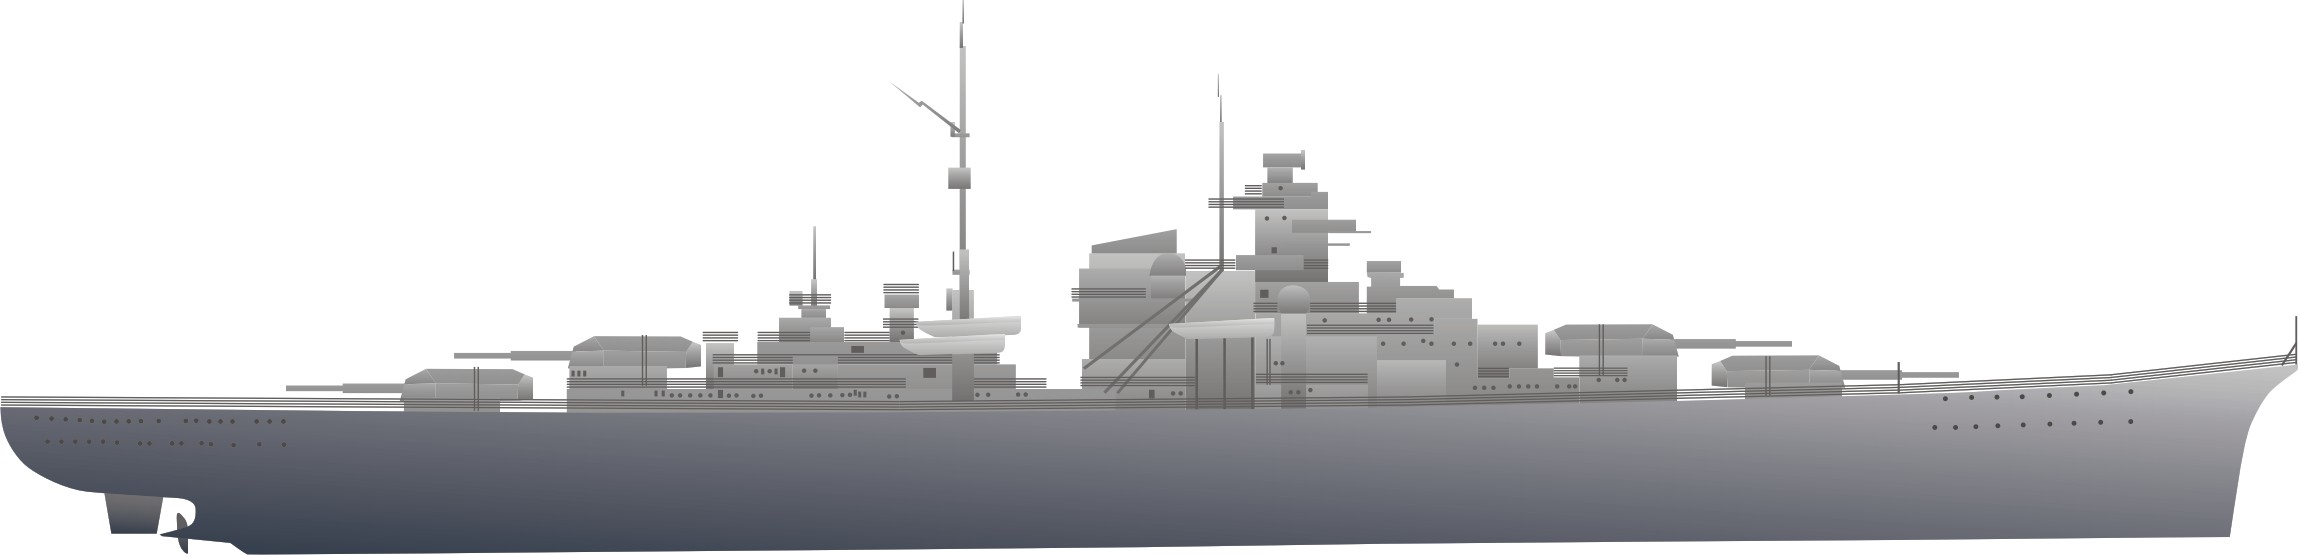 WWII ship